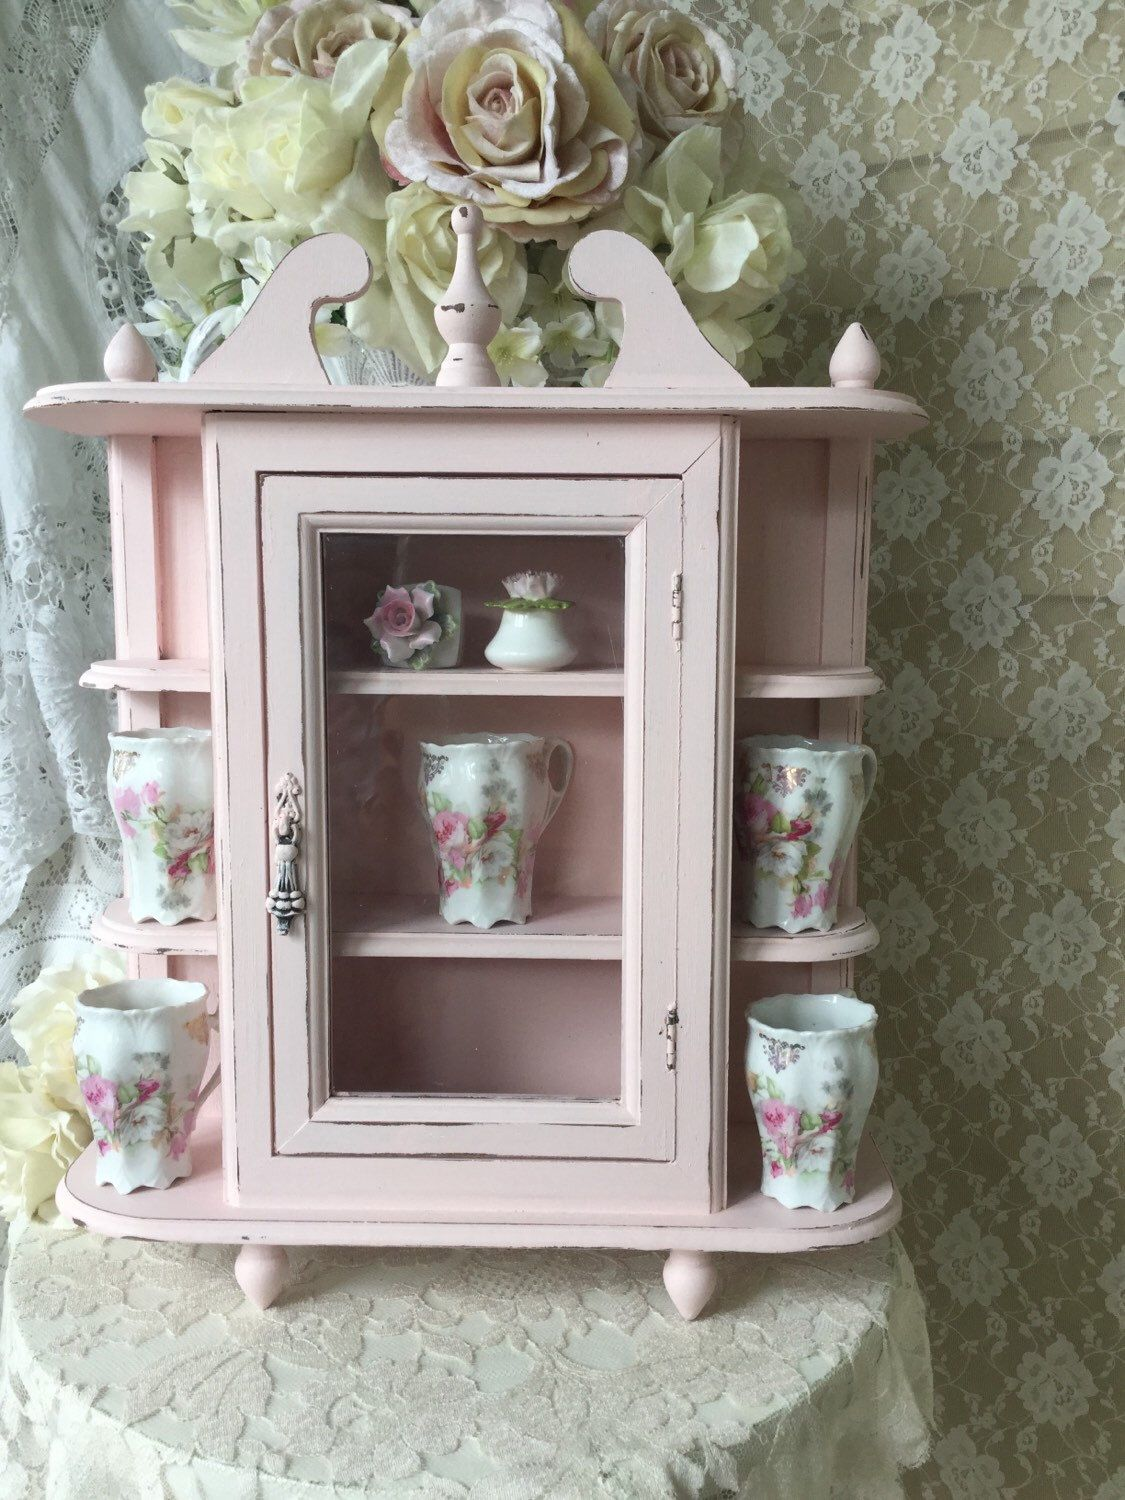 Shabby Pink Curio Cabinet With Glass Door Vintage Hanging Curio Cabinet Shelf Wall Cabinet Bathroom Ca Shabby Chic Decor Shabby Chic Pink Shabby Chic Bathroom